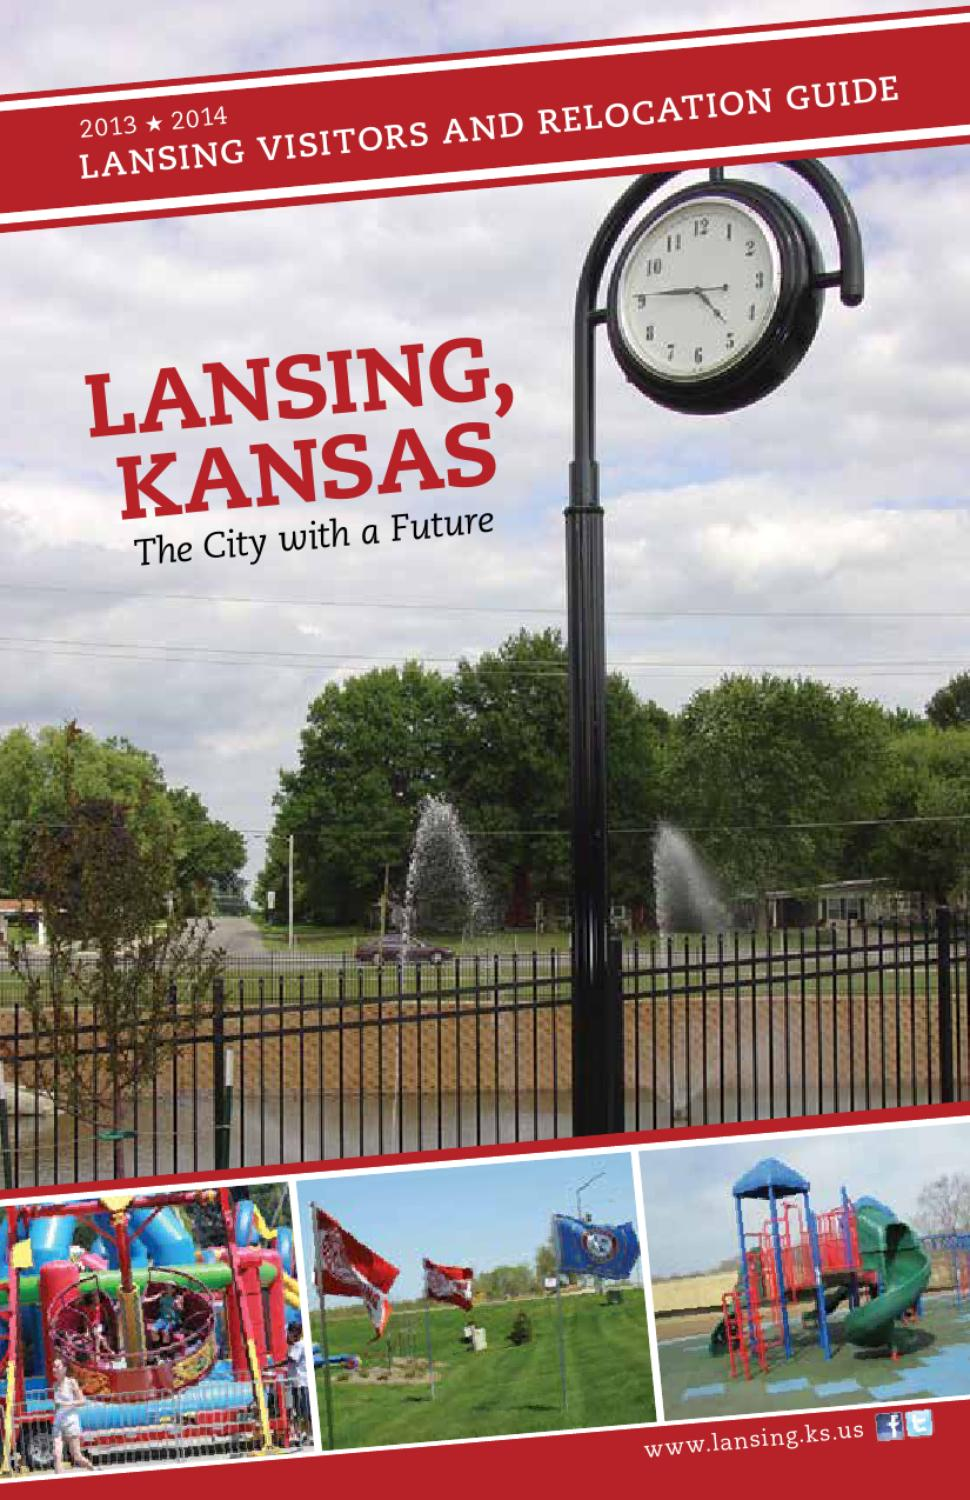 Lansing Visitors Guide 2013-2014 by Sunflower Publishing - issuu